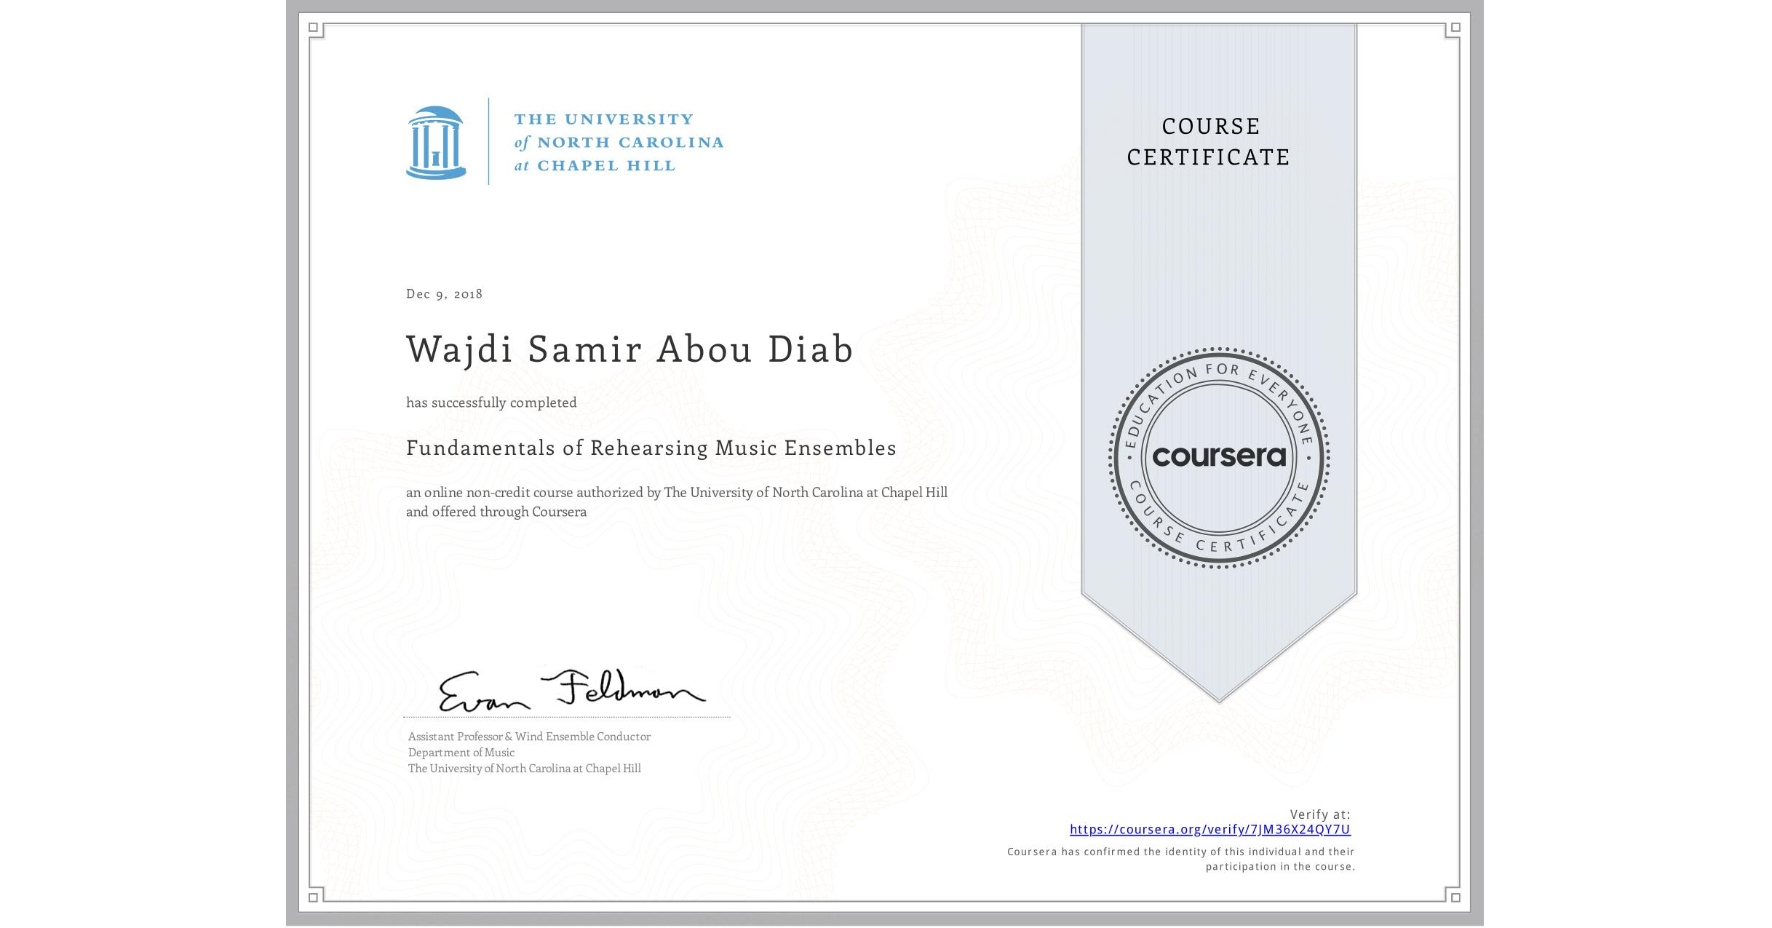 View certificate for Wajdi Samir Abou Diab, Fundamentals of Rehearsing Music Ensembles, an online non-credit course authorized by The University of North Carolina at Chapel Hill and offered through Coursera